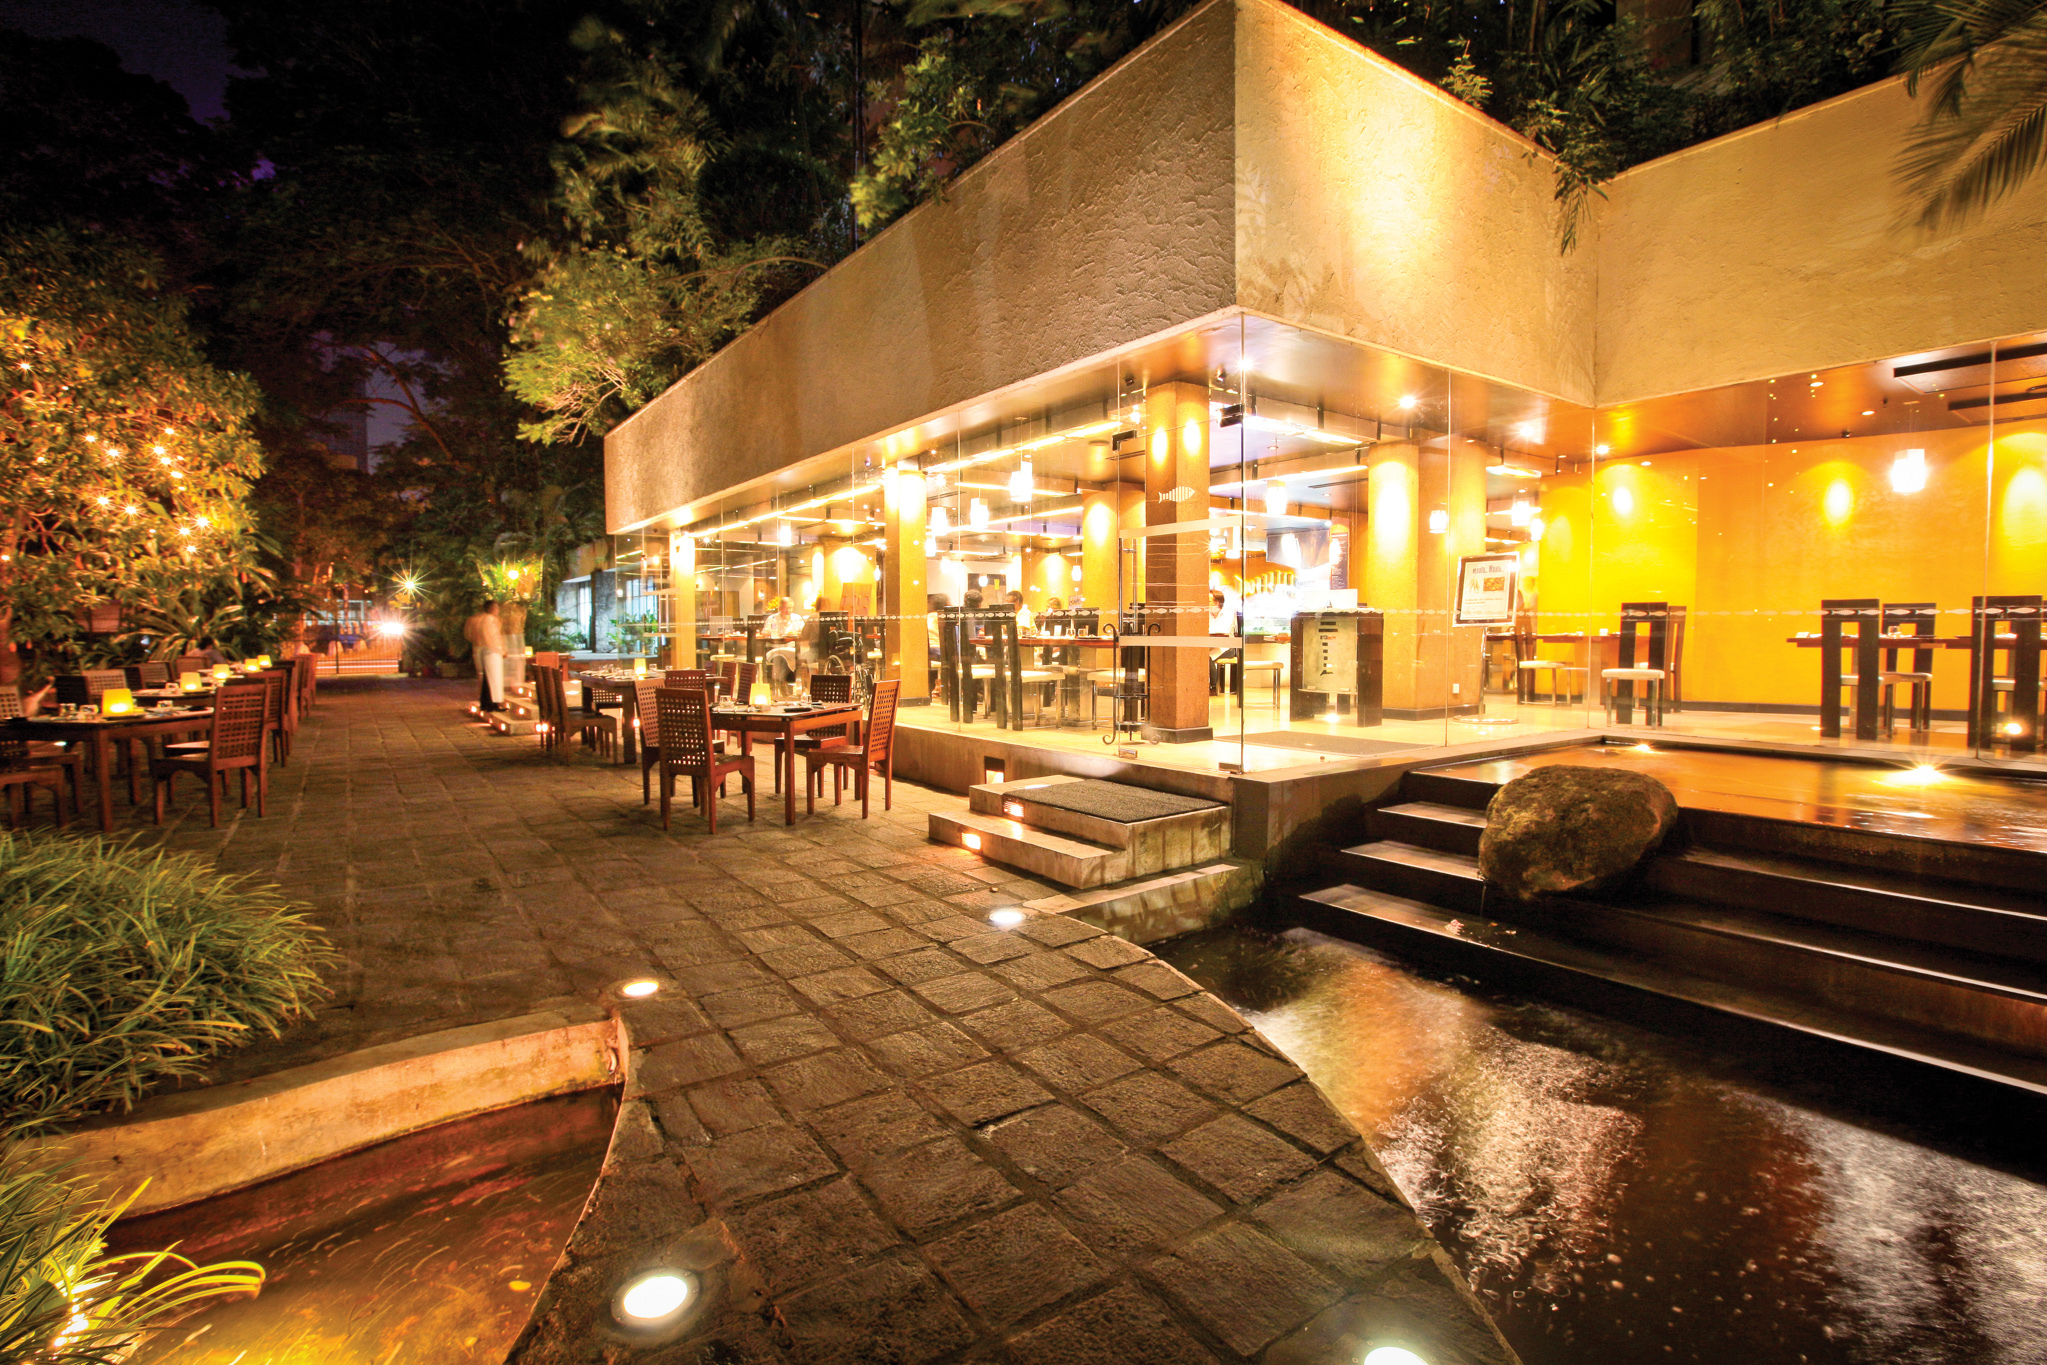 Lagoon is a restaurant in Colombo